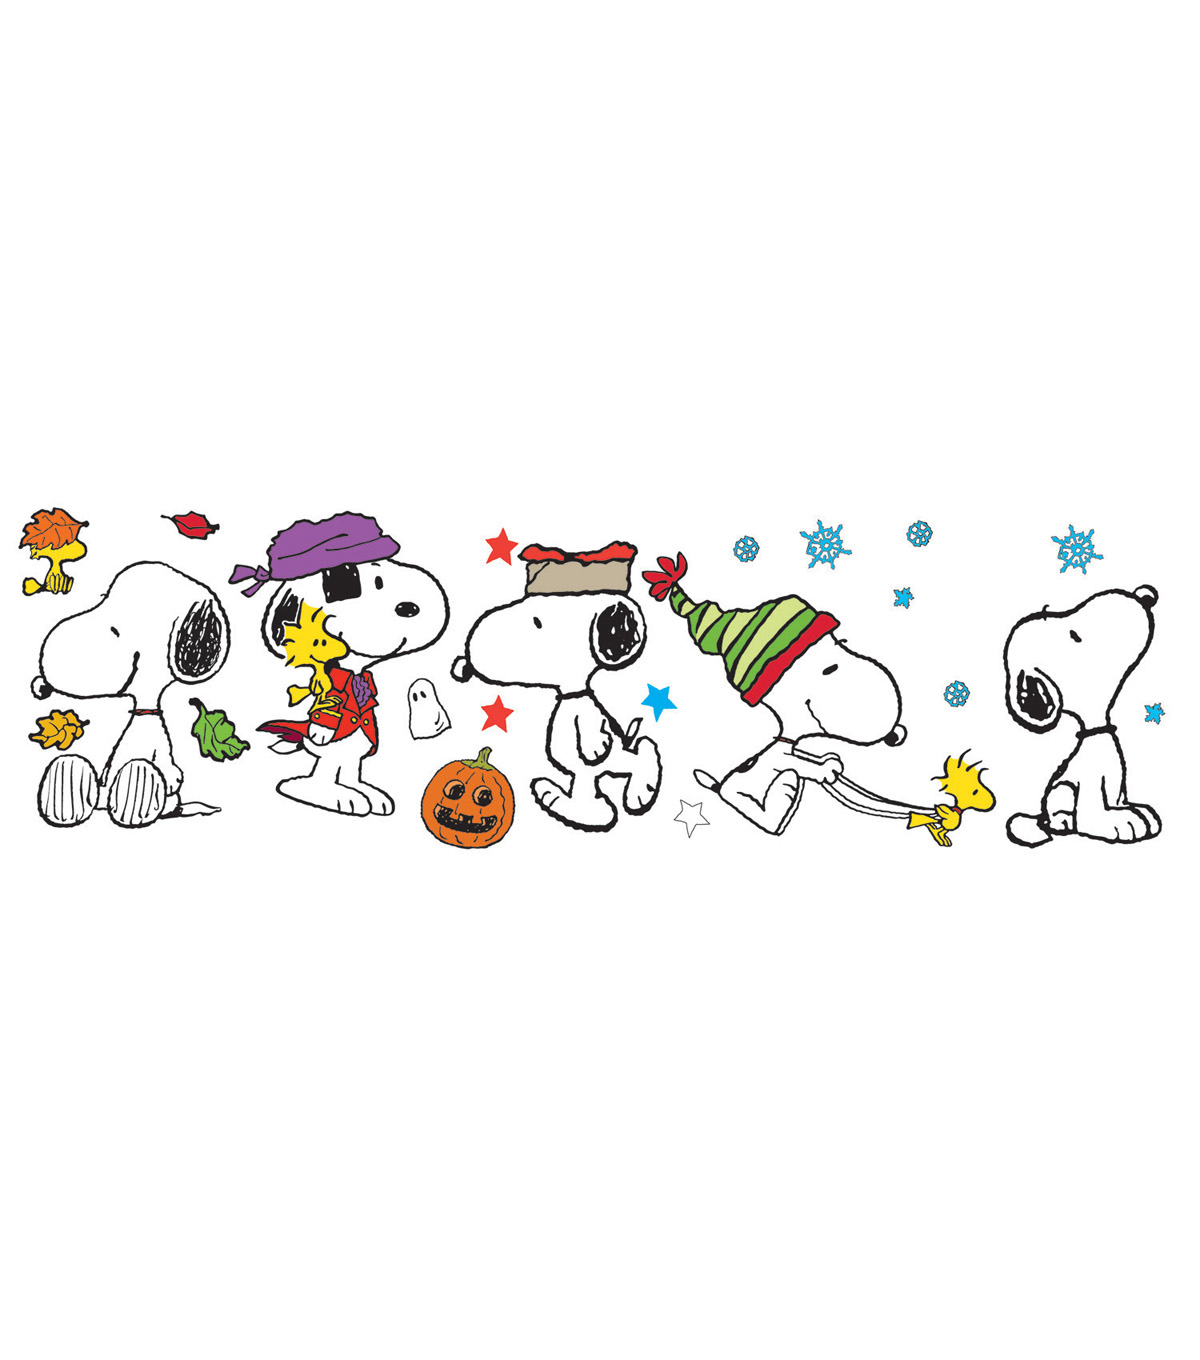 Eureka Snoopy Fall Winter Holiday Poses Bulletin Board Set, 2 Sets